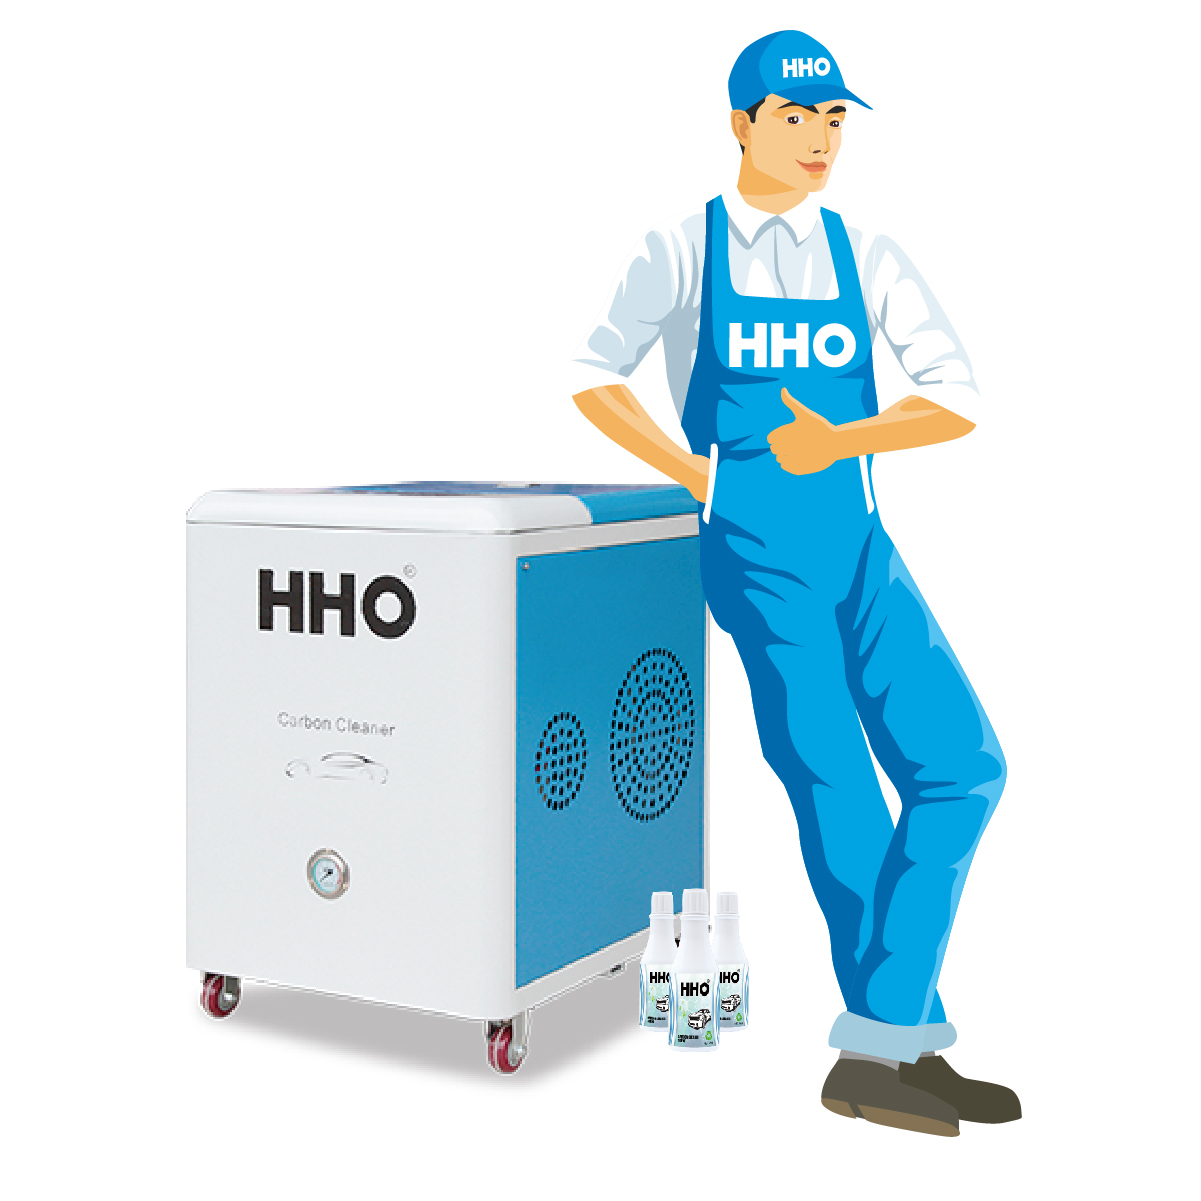 hho carbon cleaner